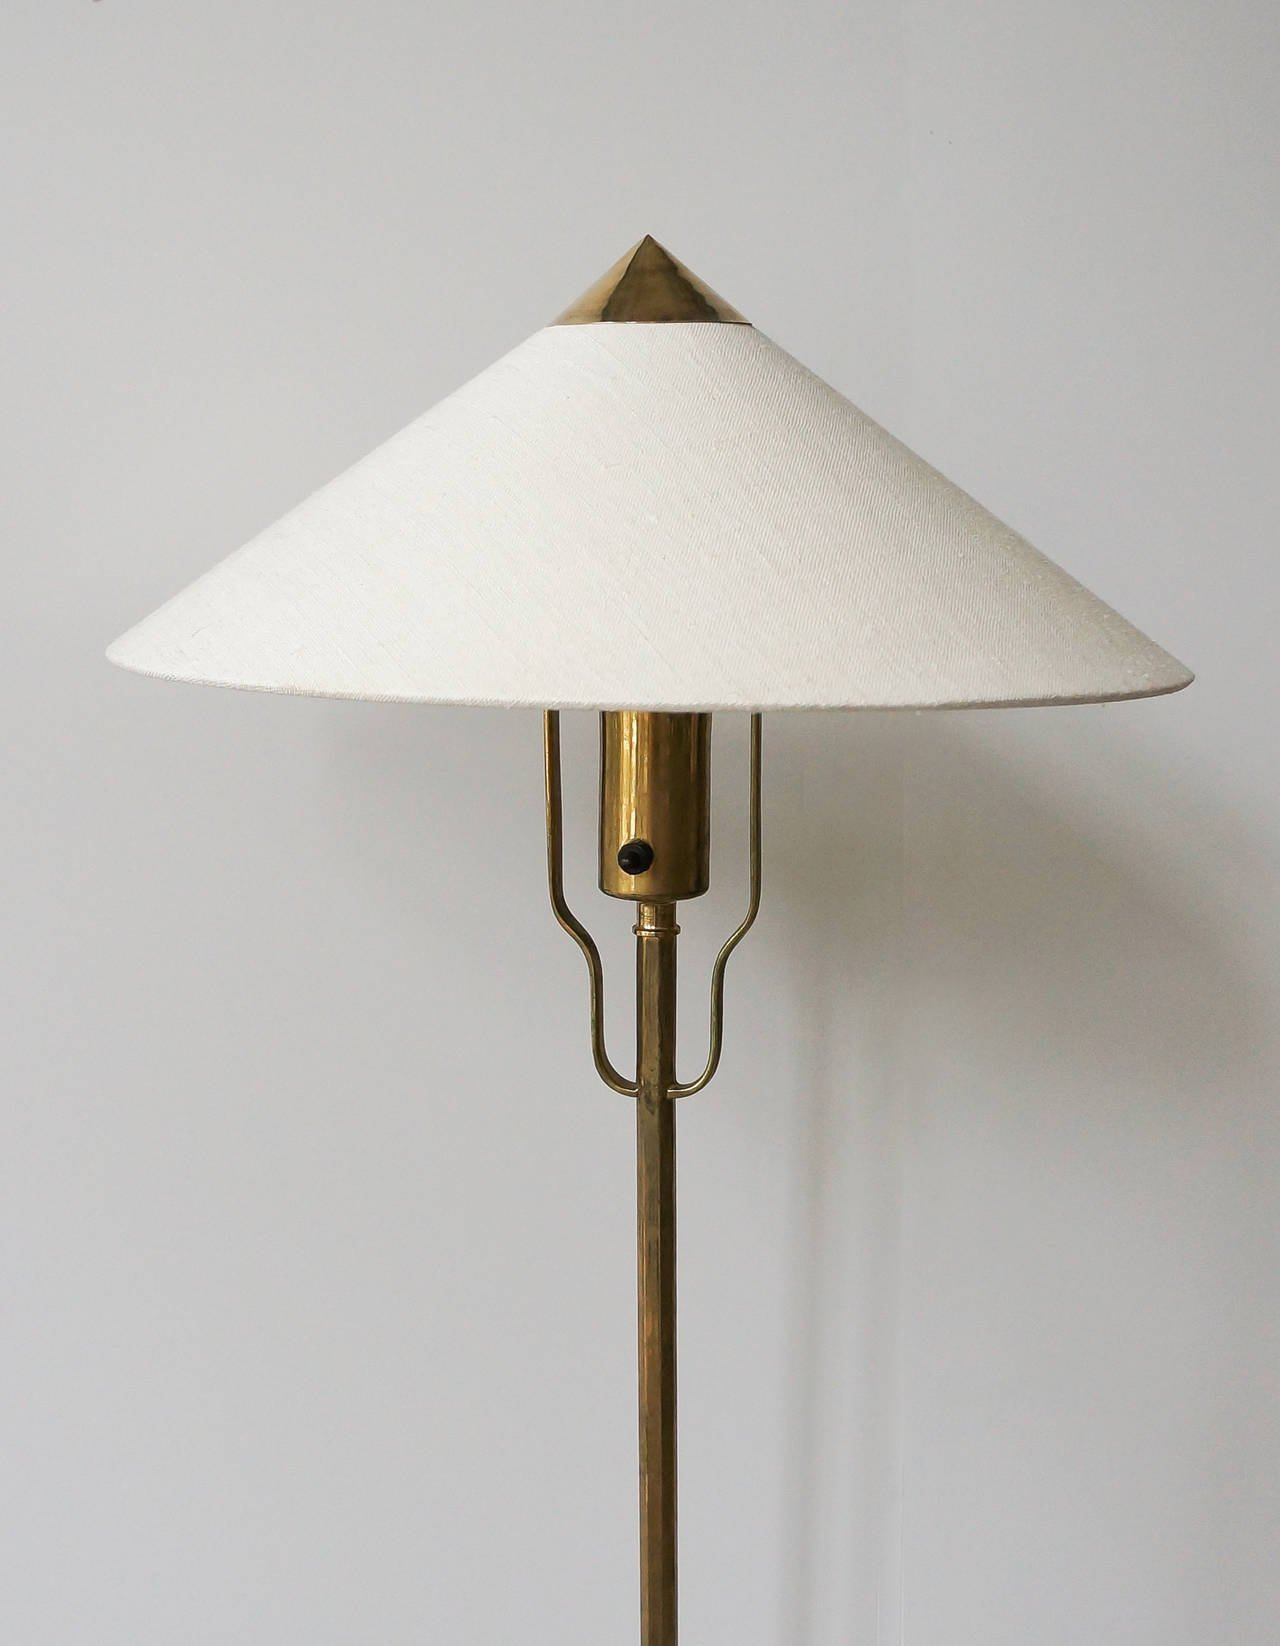 Paavo Tynell Floor Lamp Model 5762 Manufactured by Taito Oy Finland 1940s